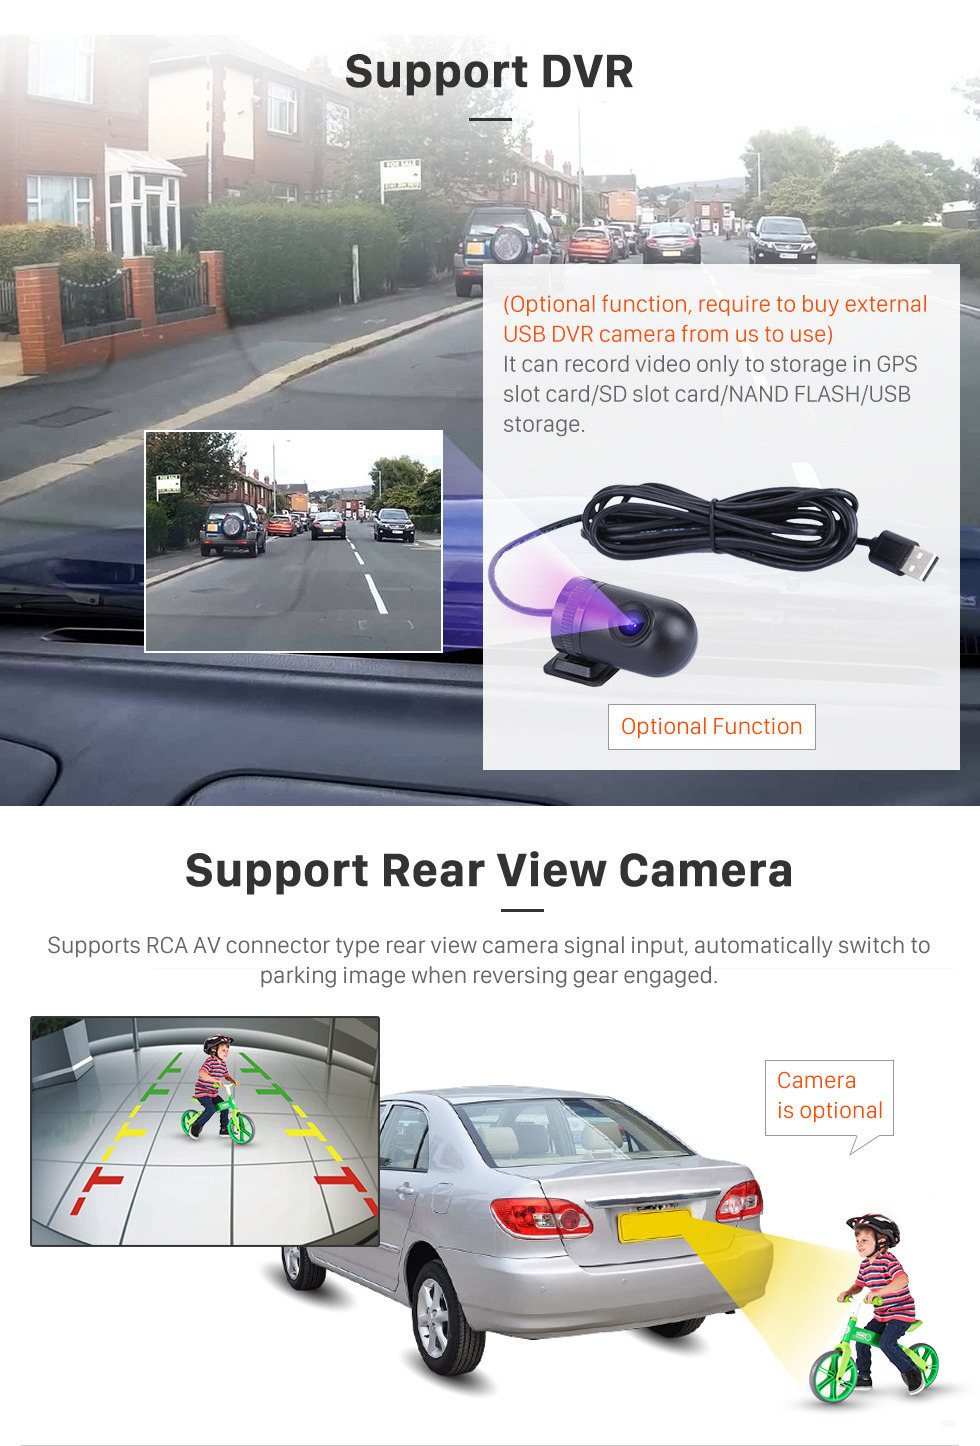 Seicane 9 inch Android 9.0 In Dash Bluetooth GPS System for 2010 2011 2012 2013 2014 2015 VW Volkswagen Tiguan with 3G WiFi Radio RDS Mirror Link OBD2 Rearview Camera AUX